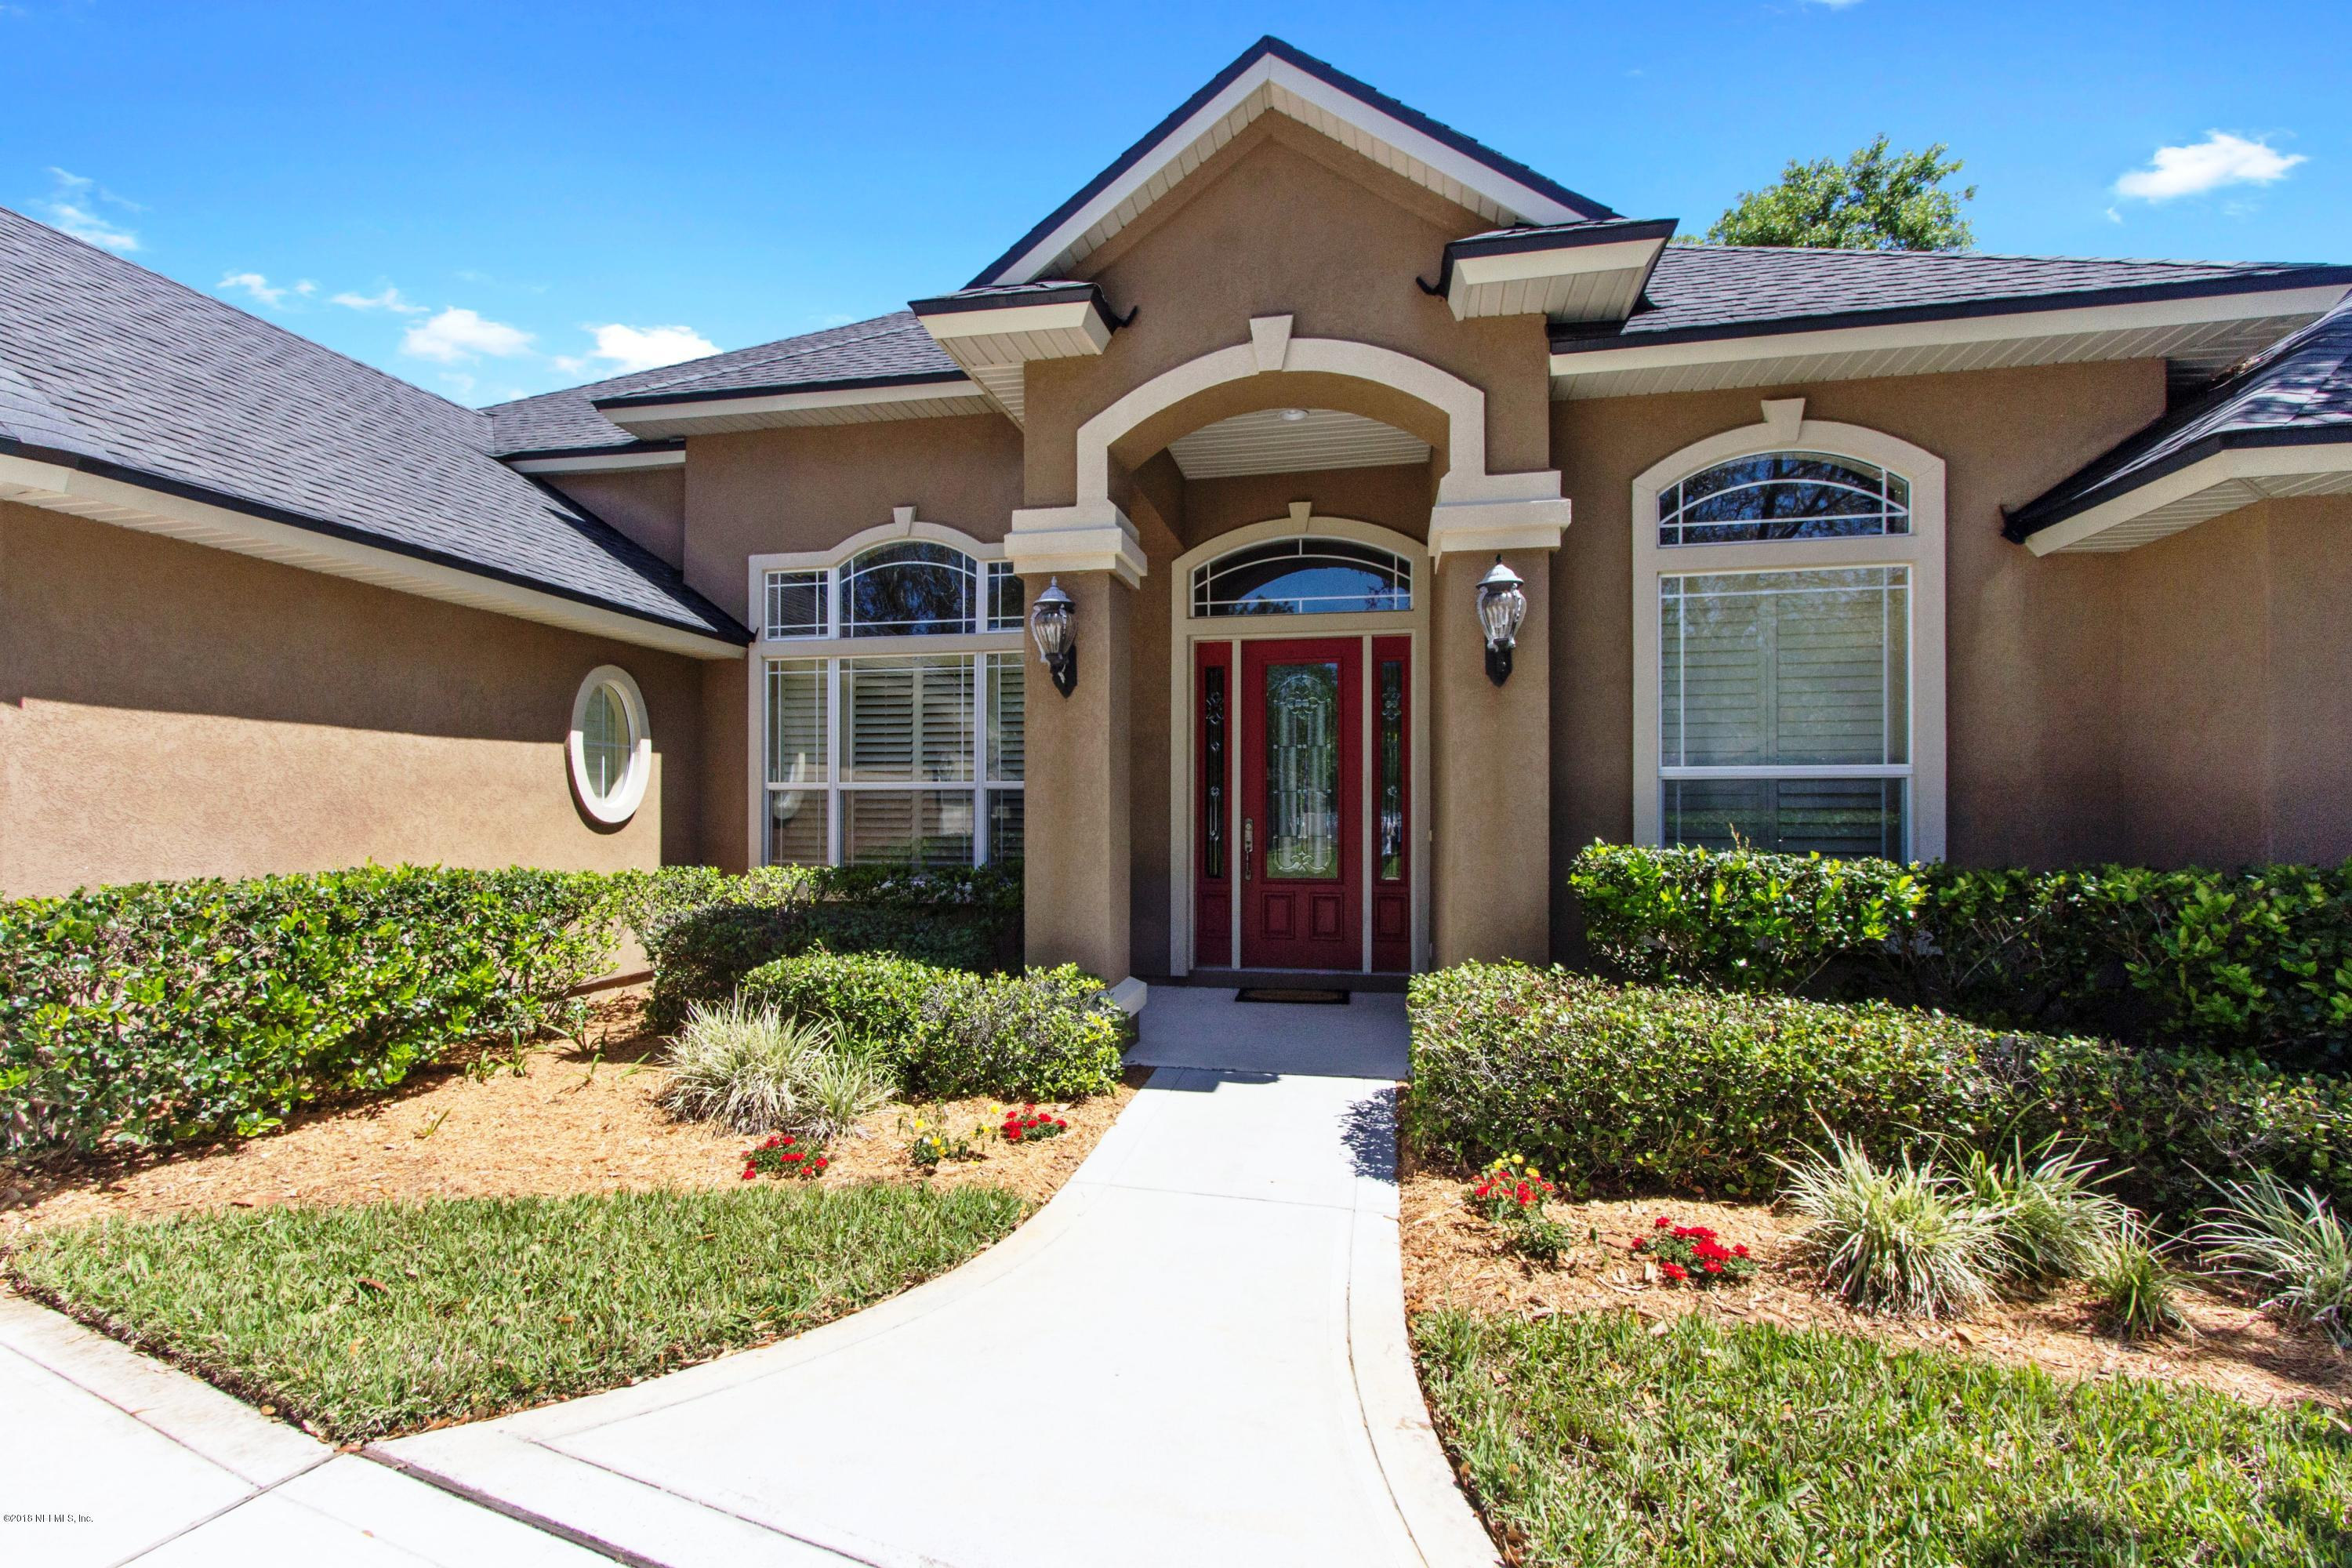 1008 W DORCHESTER DR, Julington Creek in ST. JOHNS County, FL 32259 Home for Sale